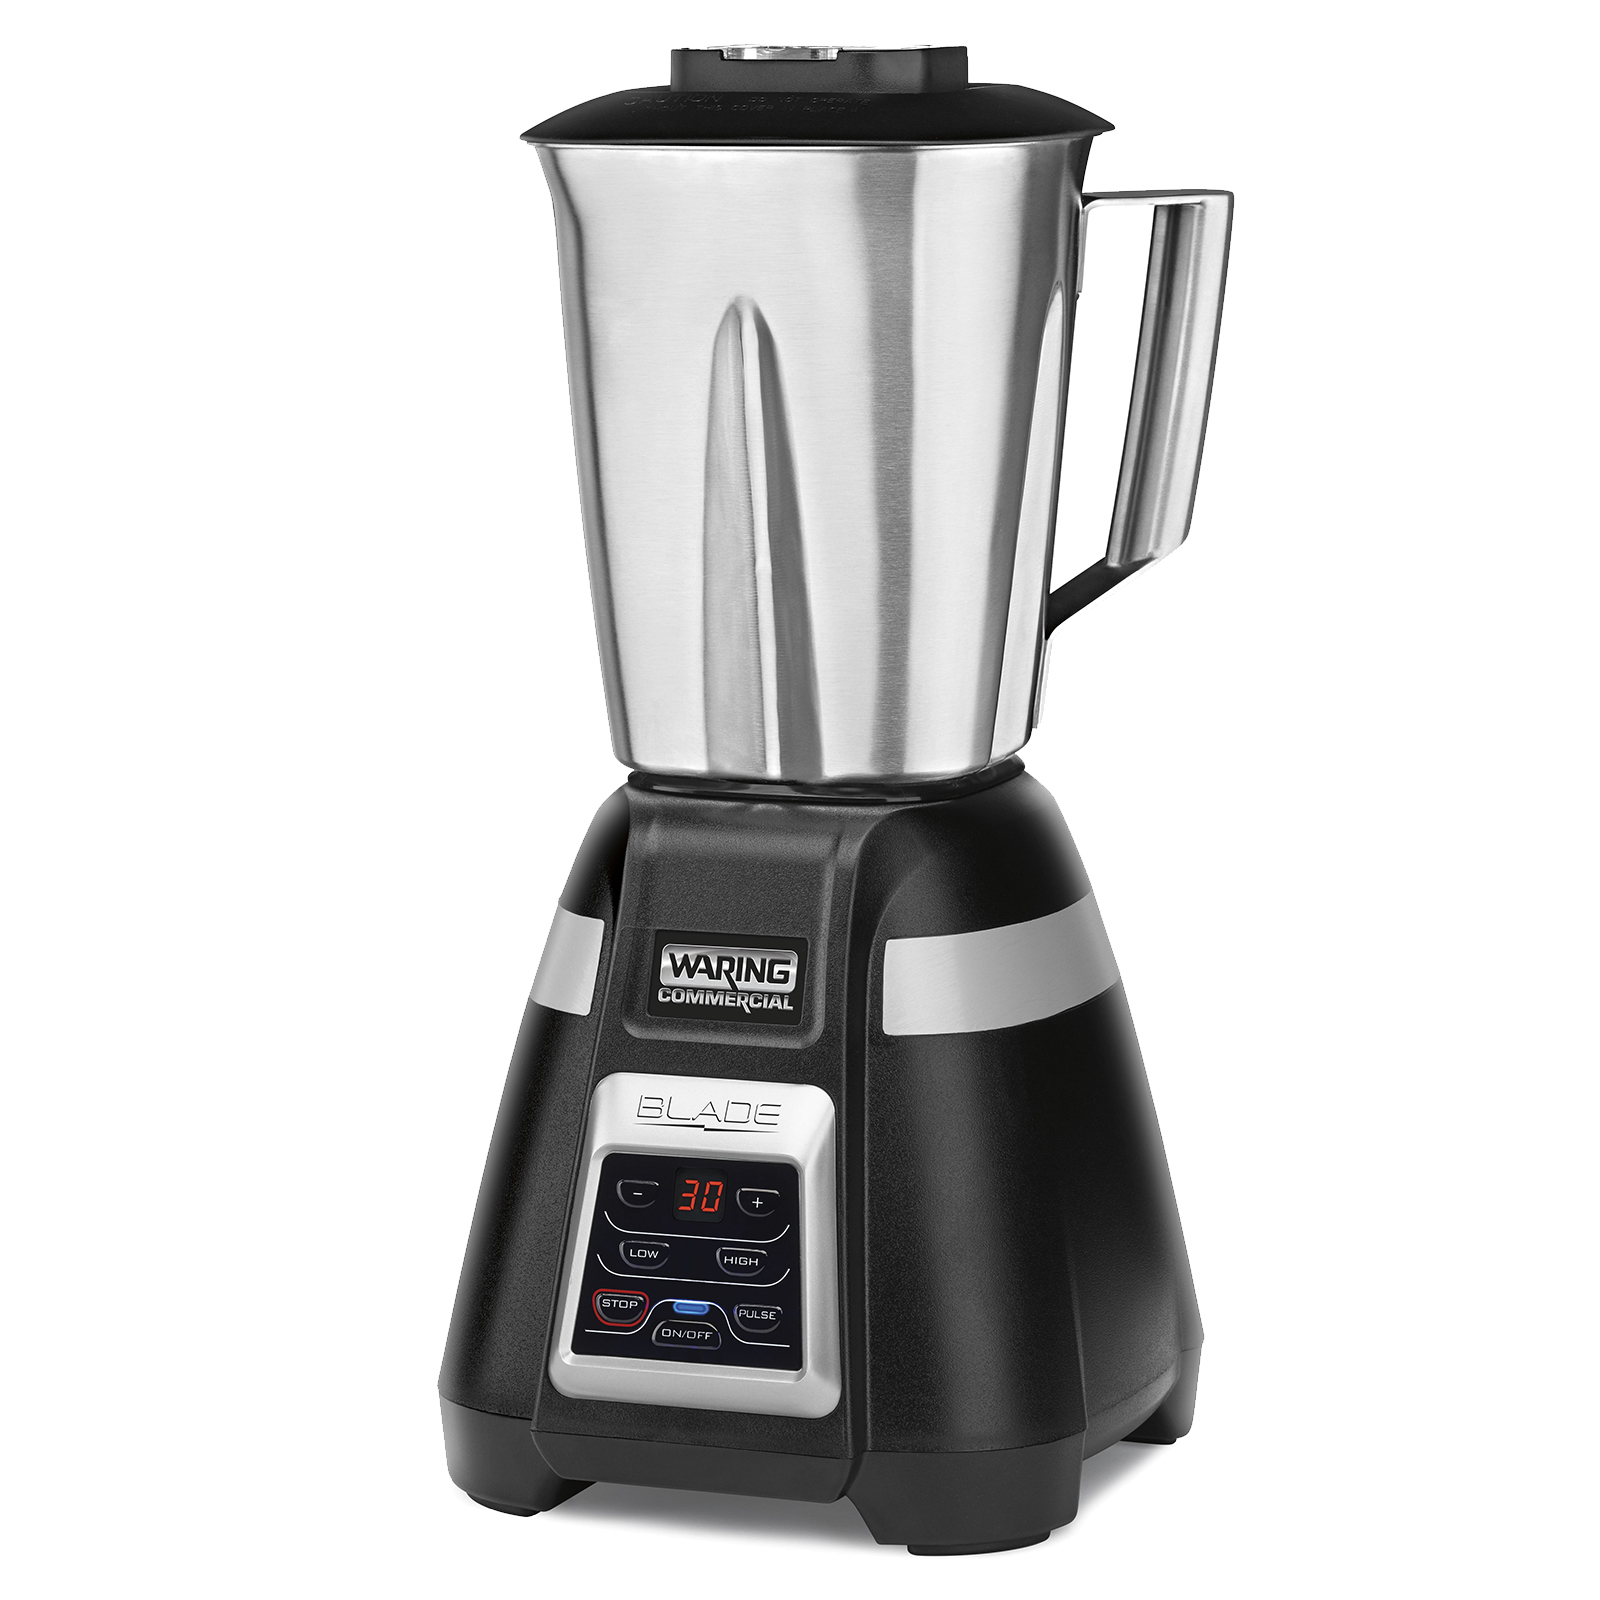 Waring BB340S blender, bar